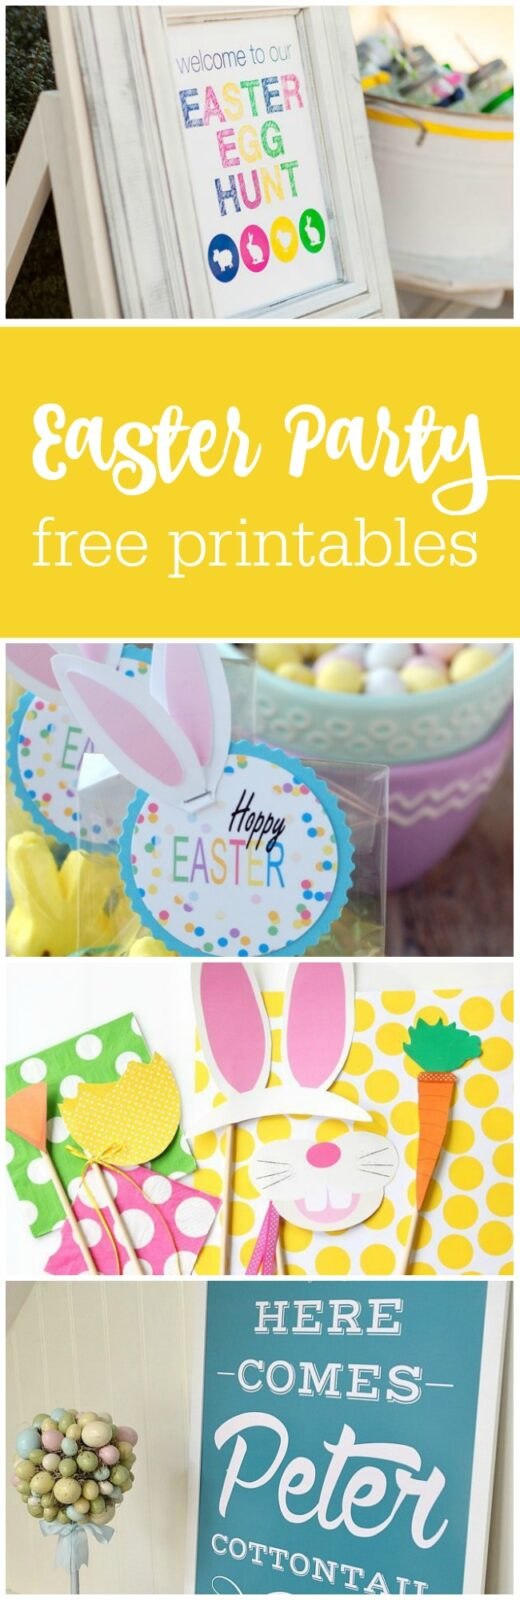 12 free Easter party printables curated by The Party Teacher